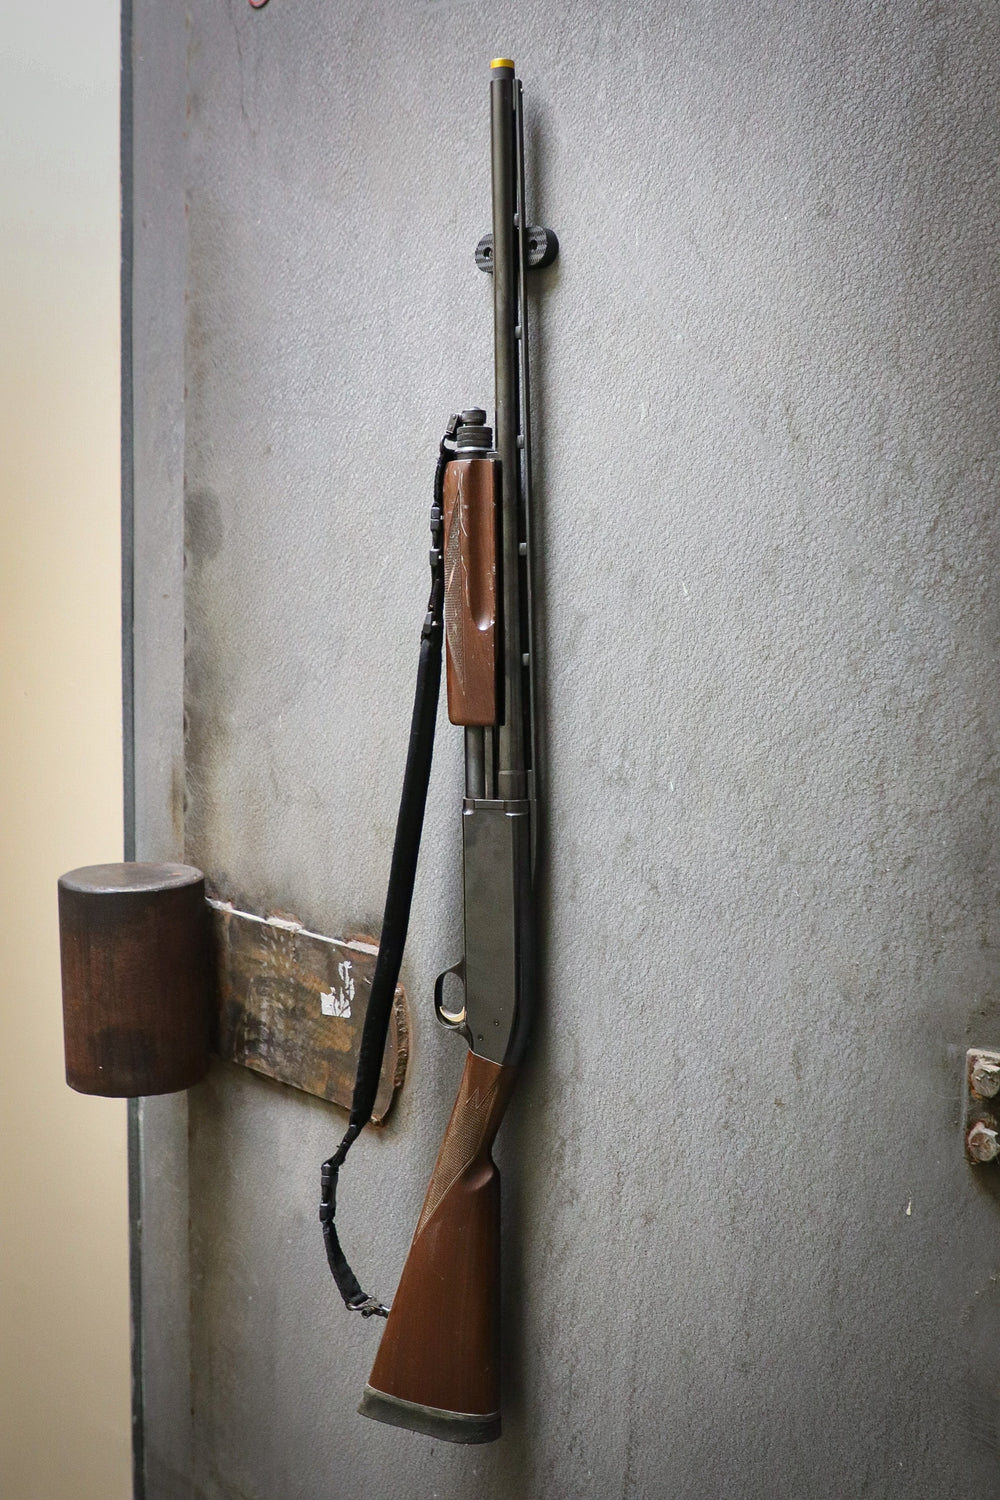 A Shotgun held to a safe door by a CoJo Gun gripper gun magnet